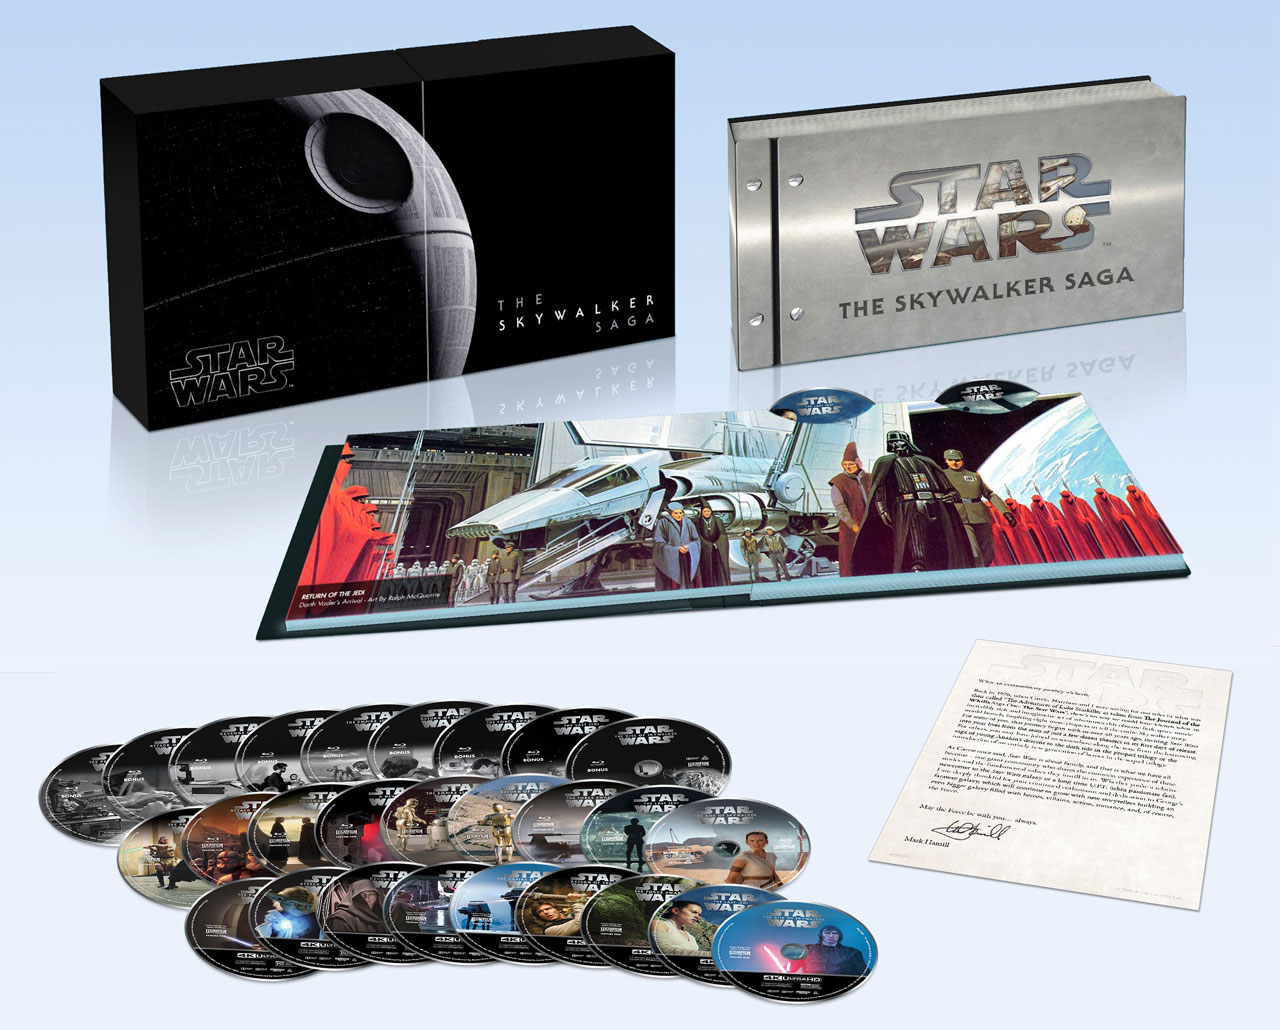 star wars the skywalker saga 4k blu-ray collection open